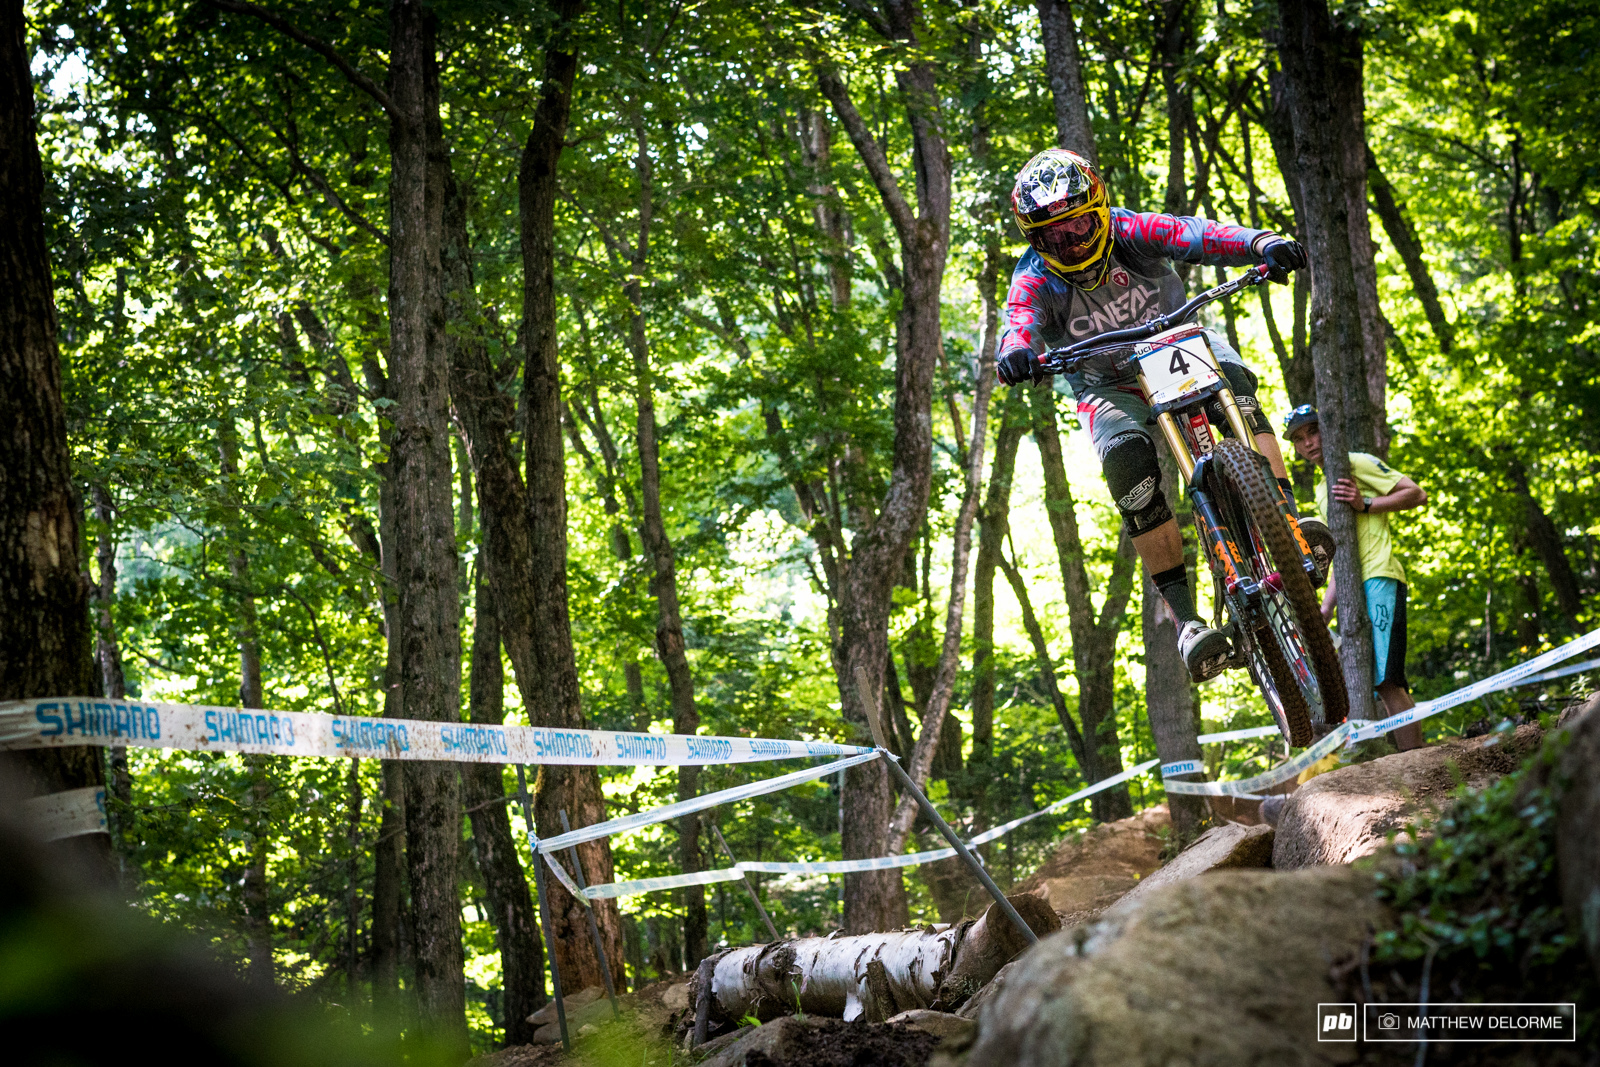 Greg Minnaar was eighth fastest in timed training but because it s Greg you could expect to see him on the podium come Saturday.